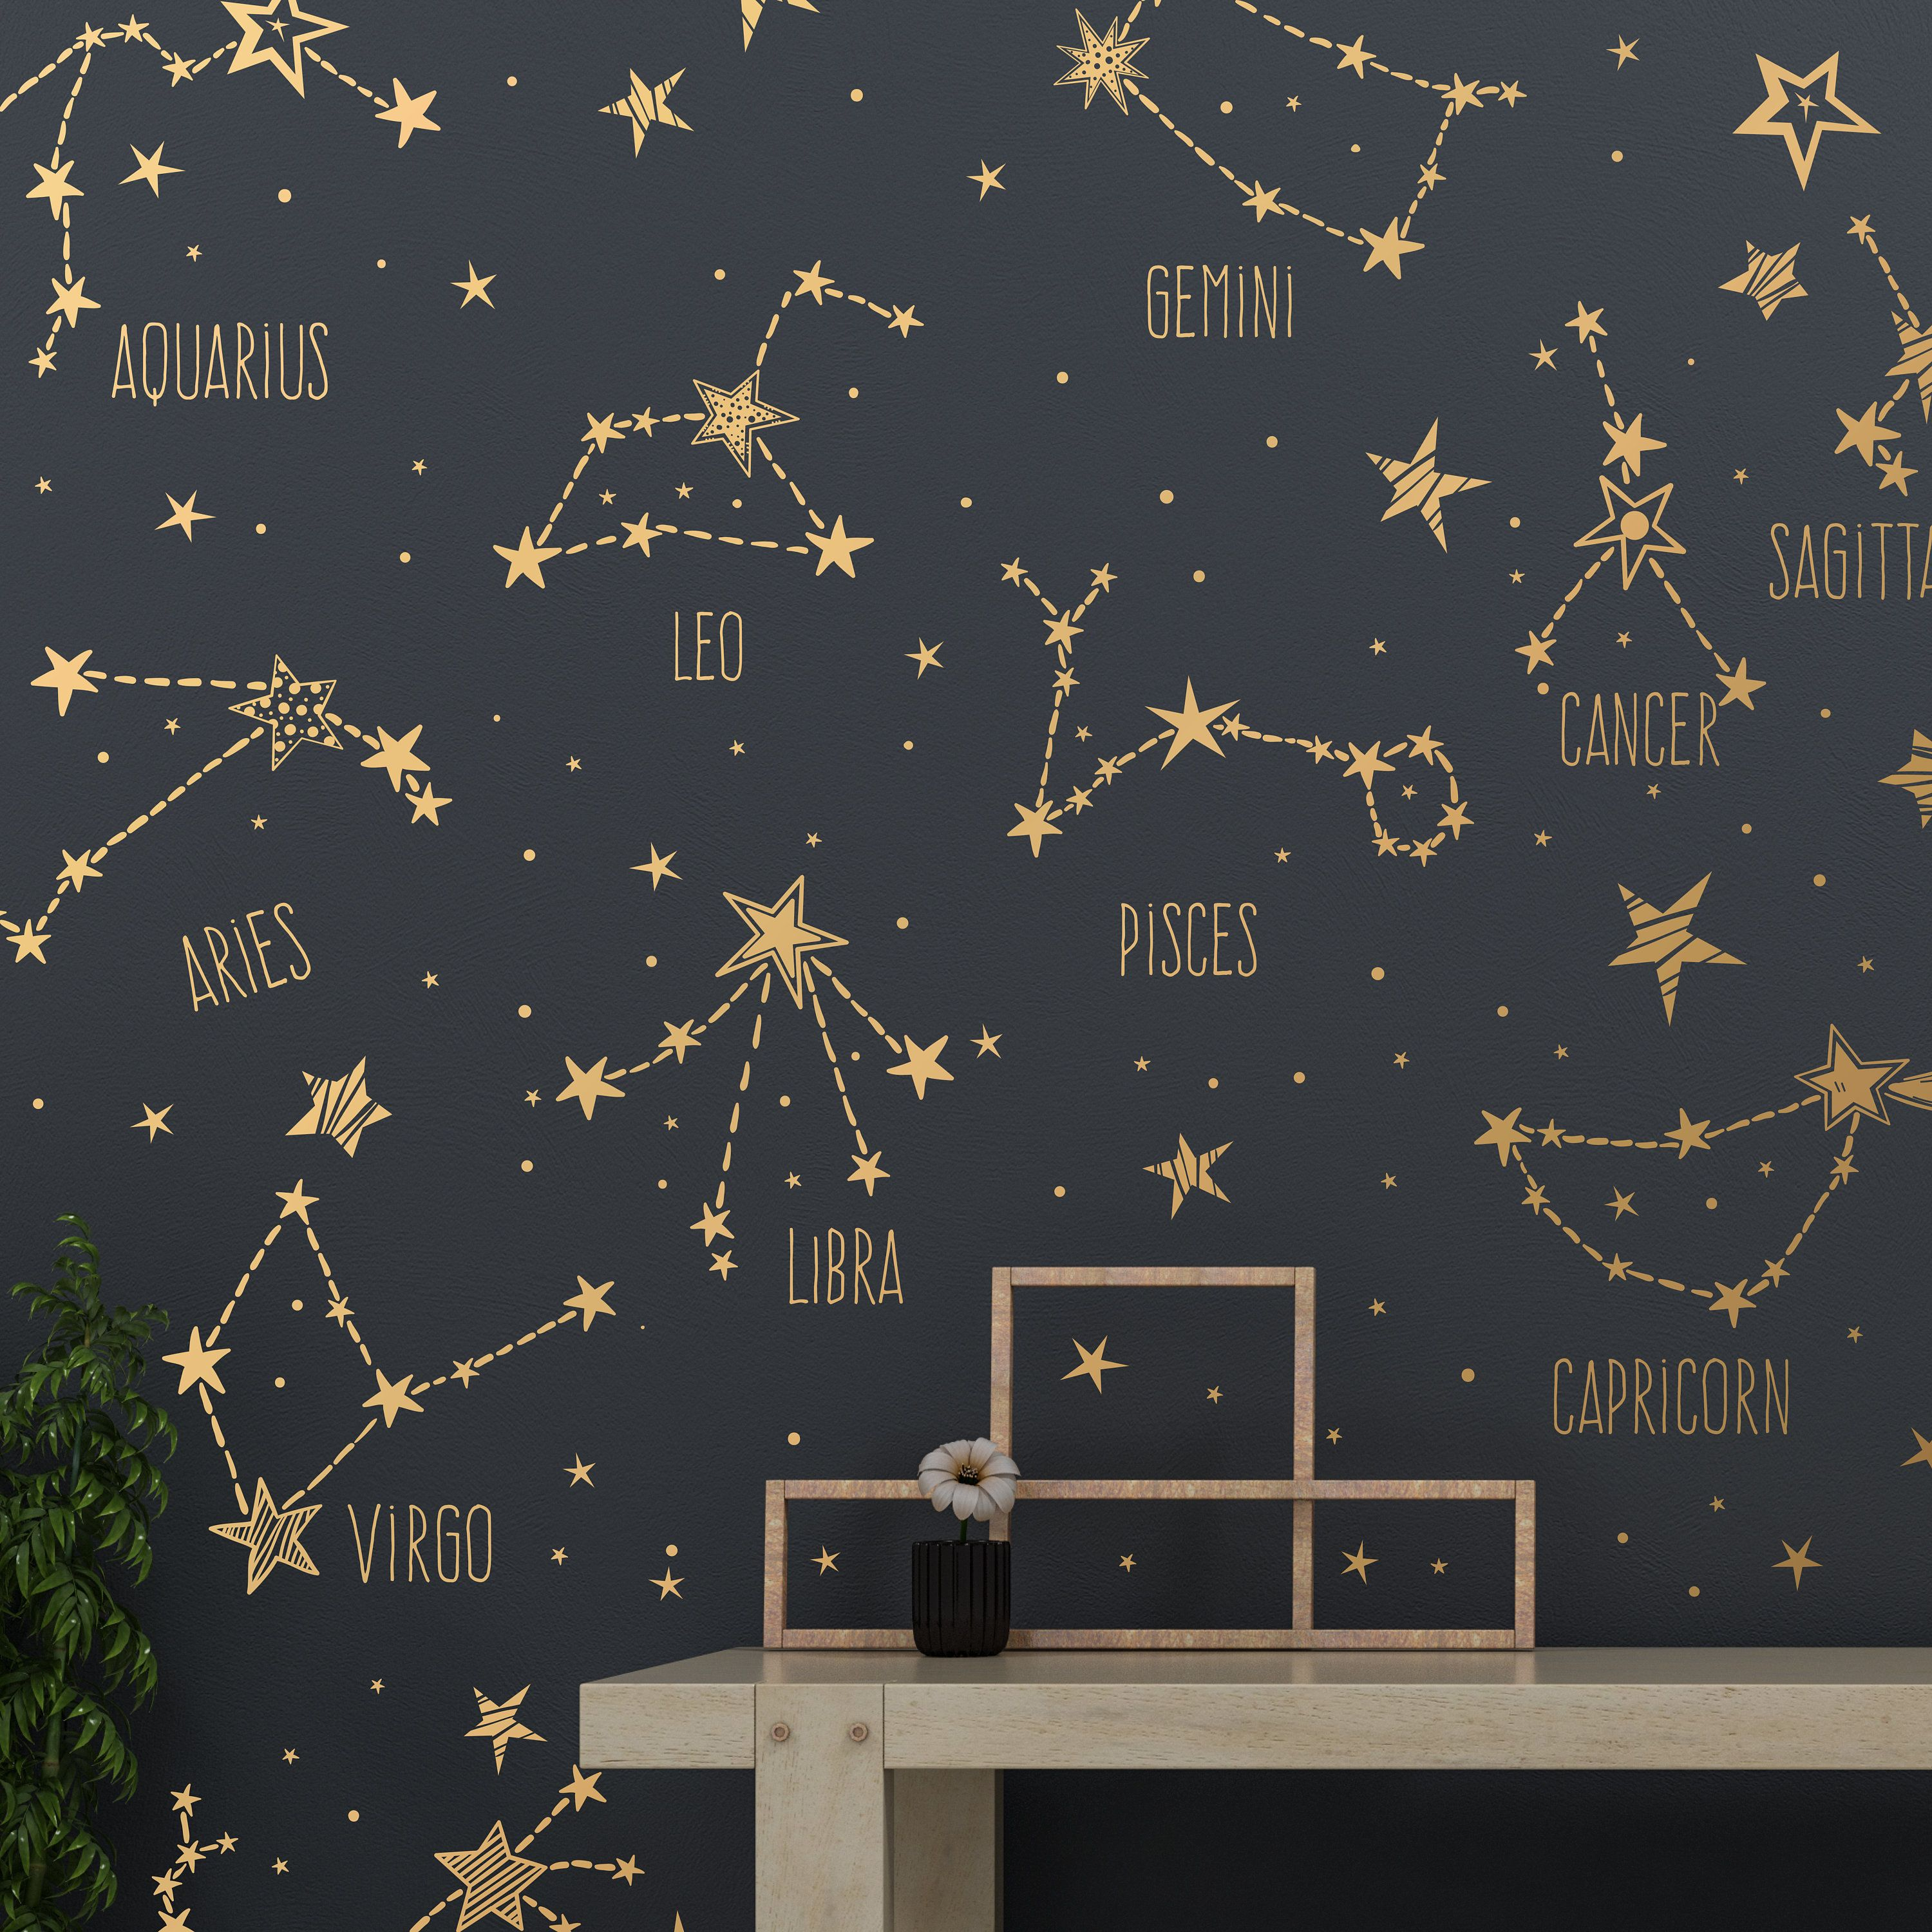 Hand Drawn Zodiac Constellations And Star Decals Large Collection Wall Decals Stickers Murals With Images Constellation Wall Art Constellations Star Decals